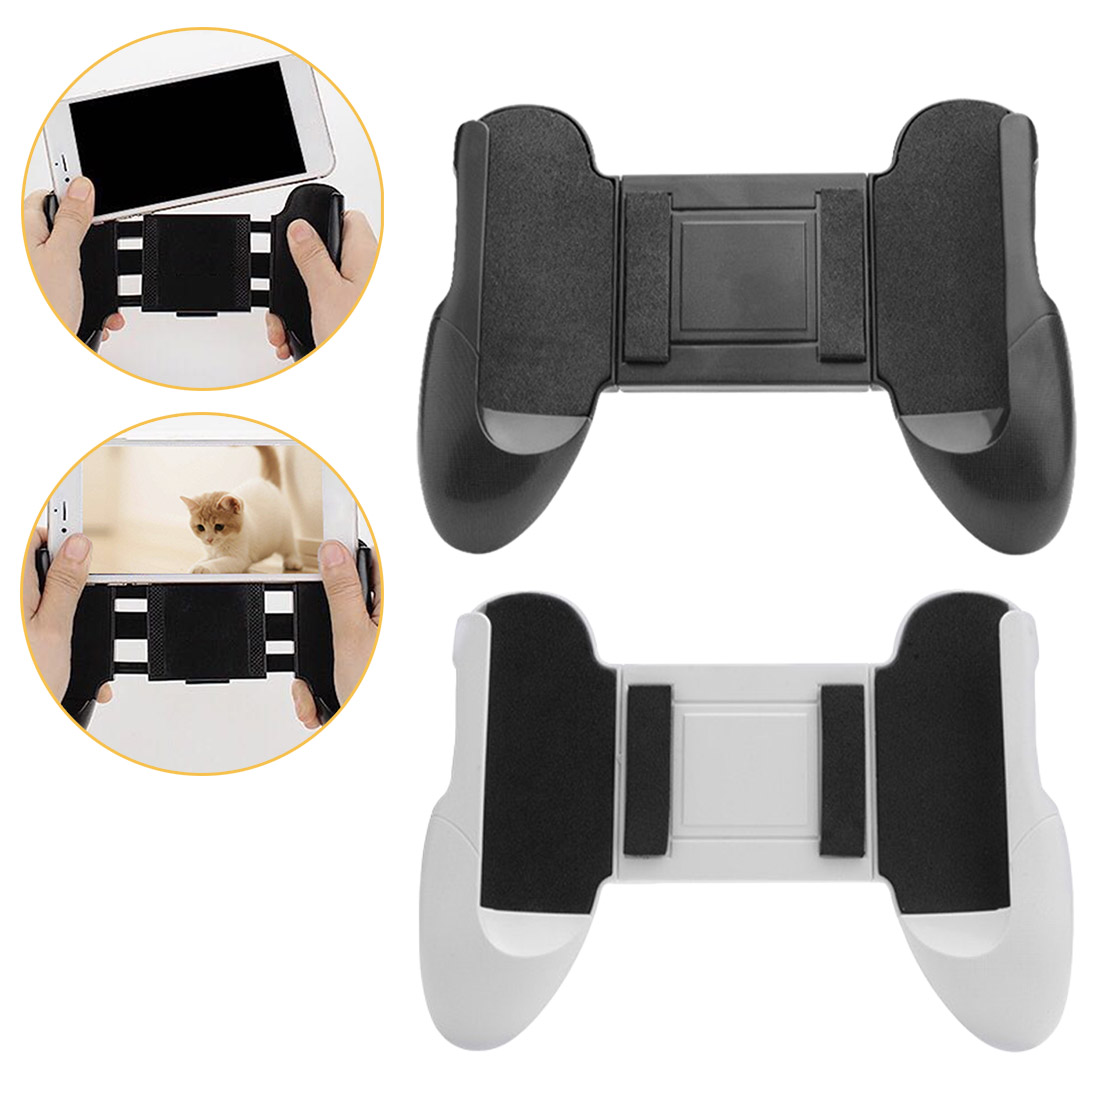 4.5-6.5 Inch'' Mobile Game Support Gamepad Bracket Handle Stand Mobile Phone Game Holder